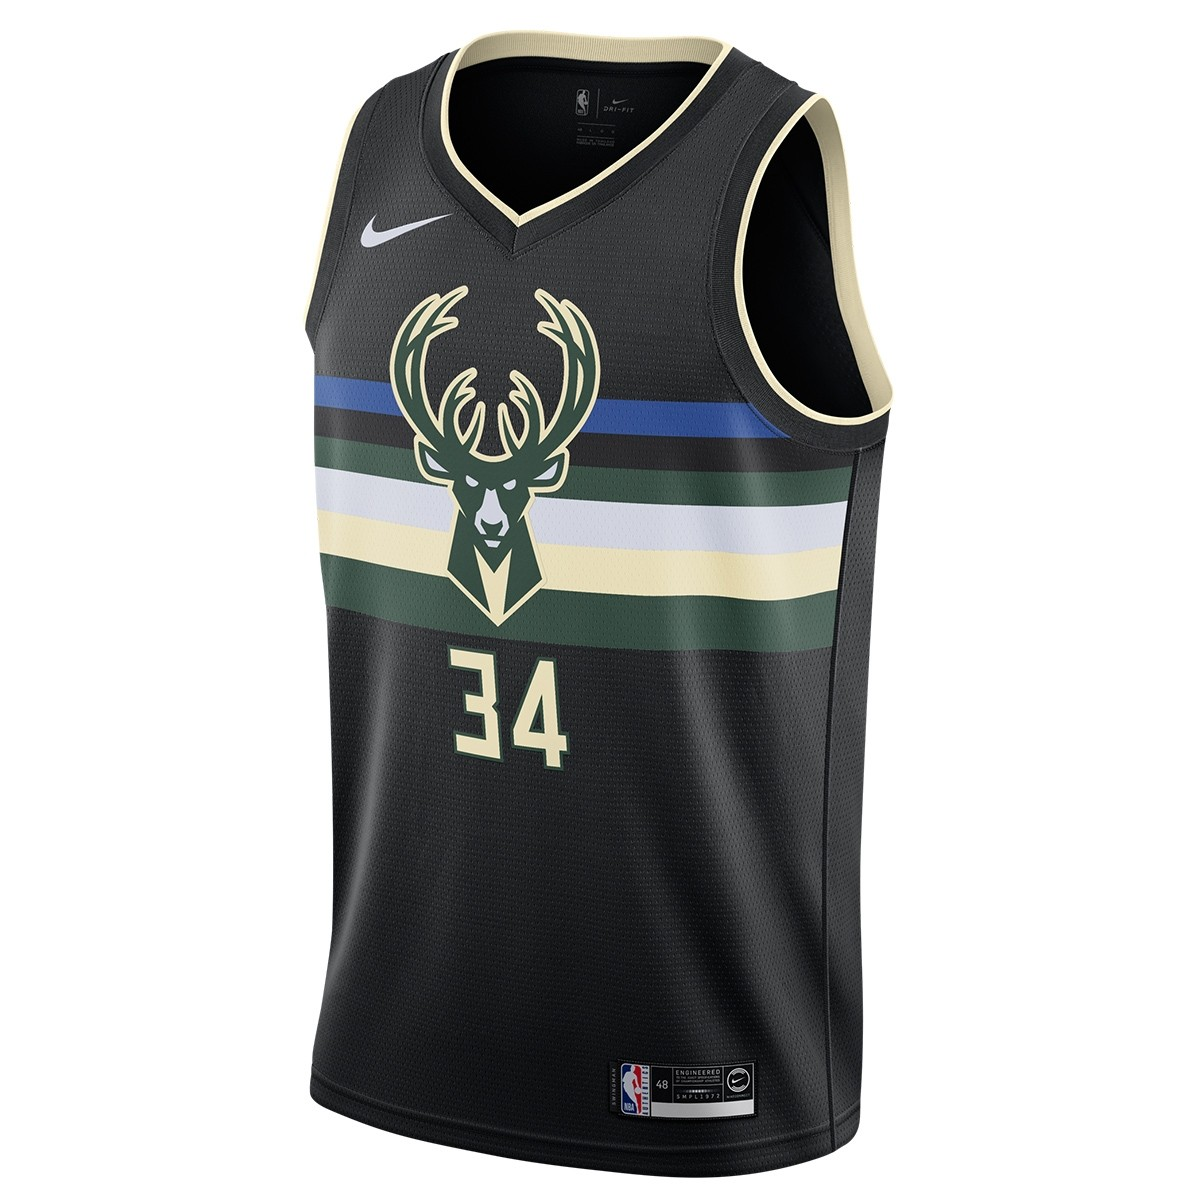 Nike NBA Bucks Swingman Jersey Antetokounmpo 'Statement Edition'-AT9806-011